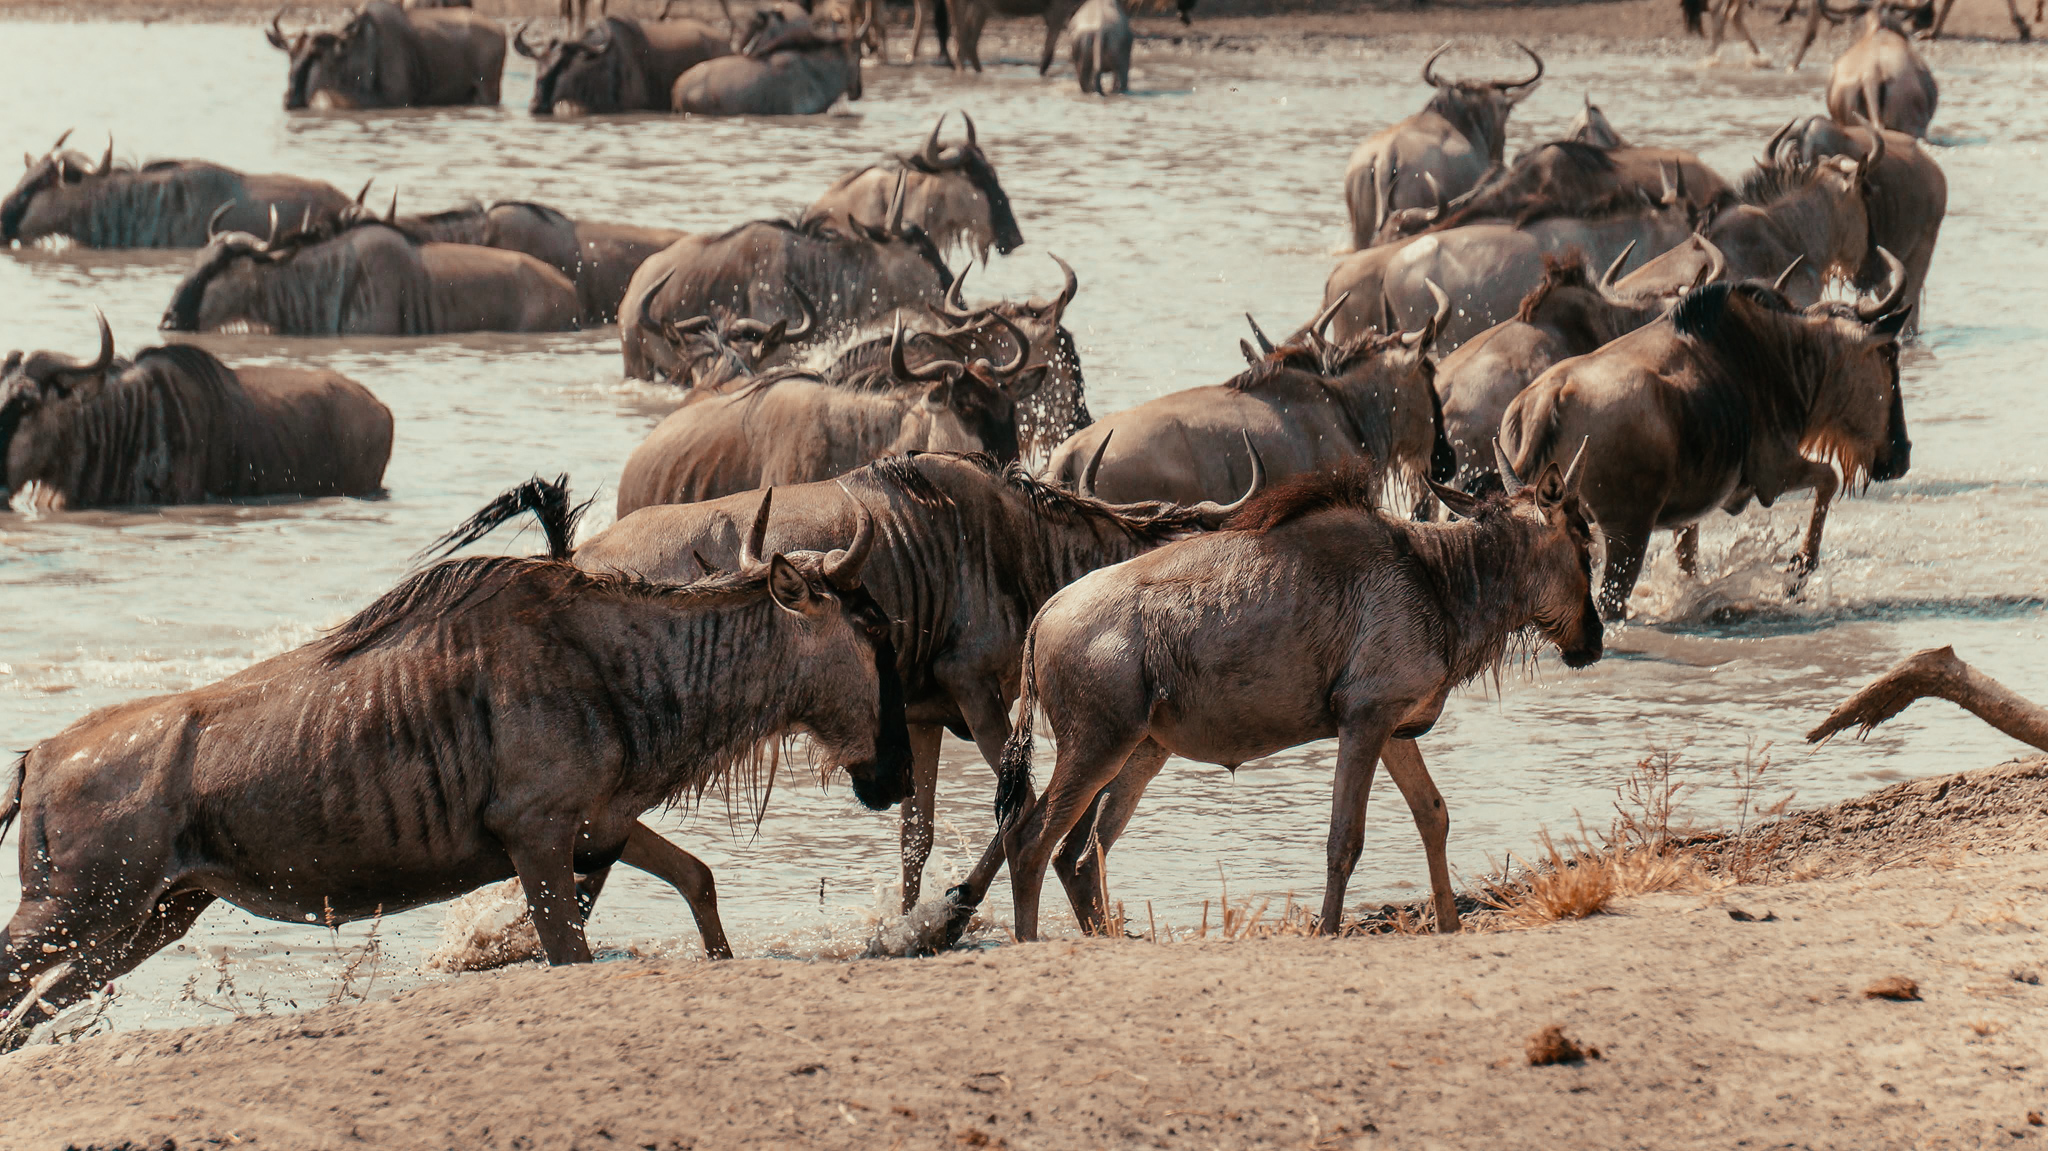 Serengeti National Park -